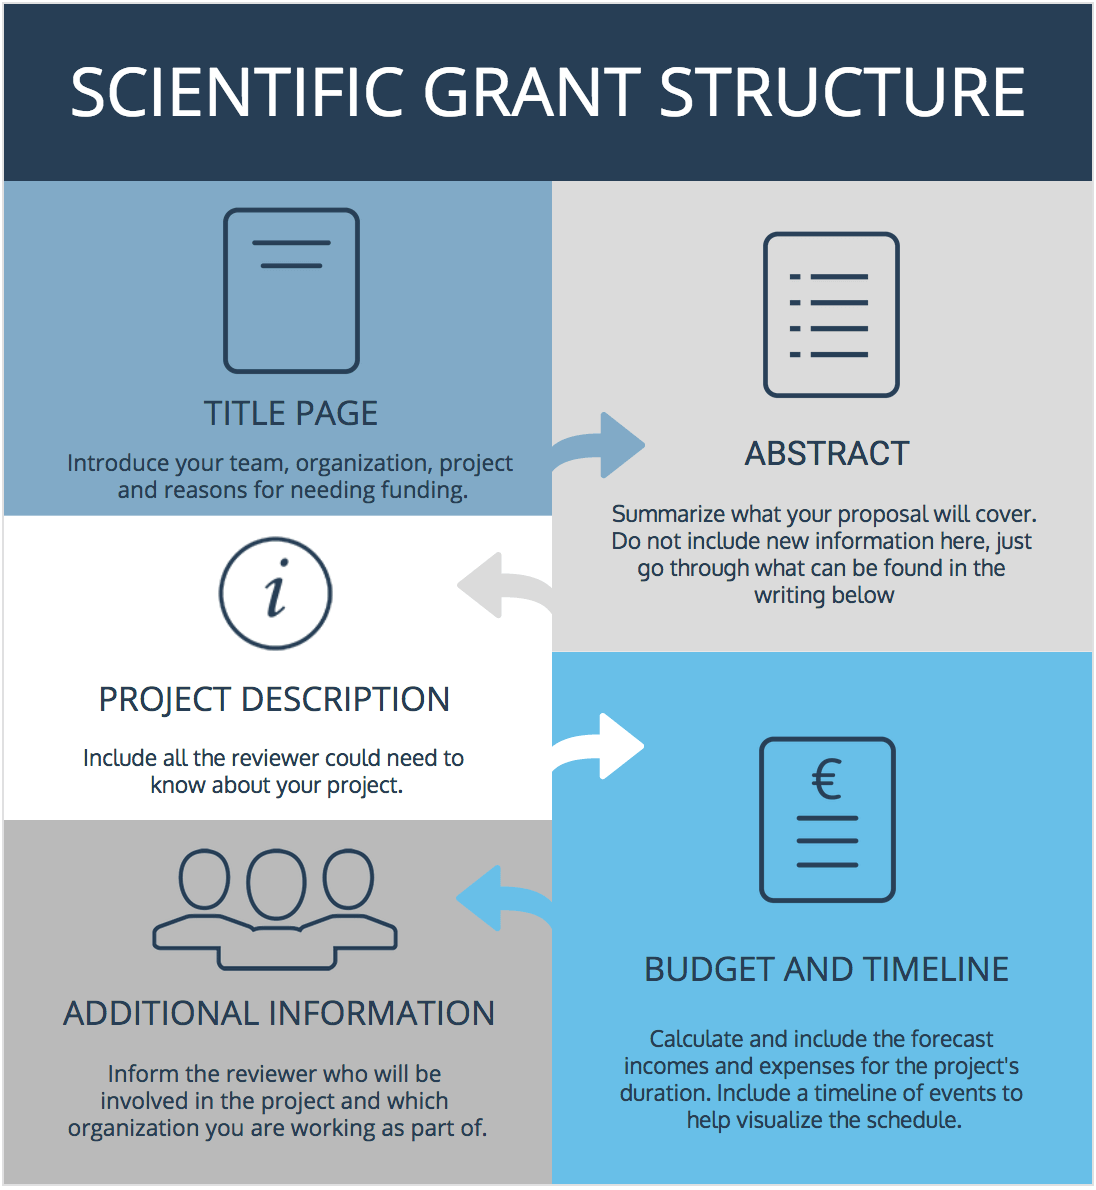 Infographic: Scientific grant structure